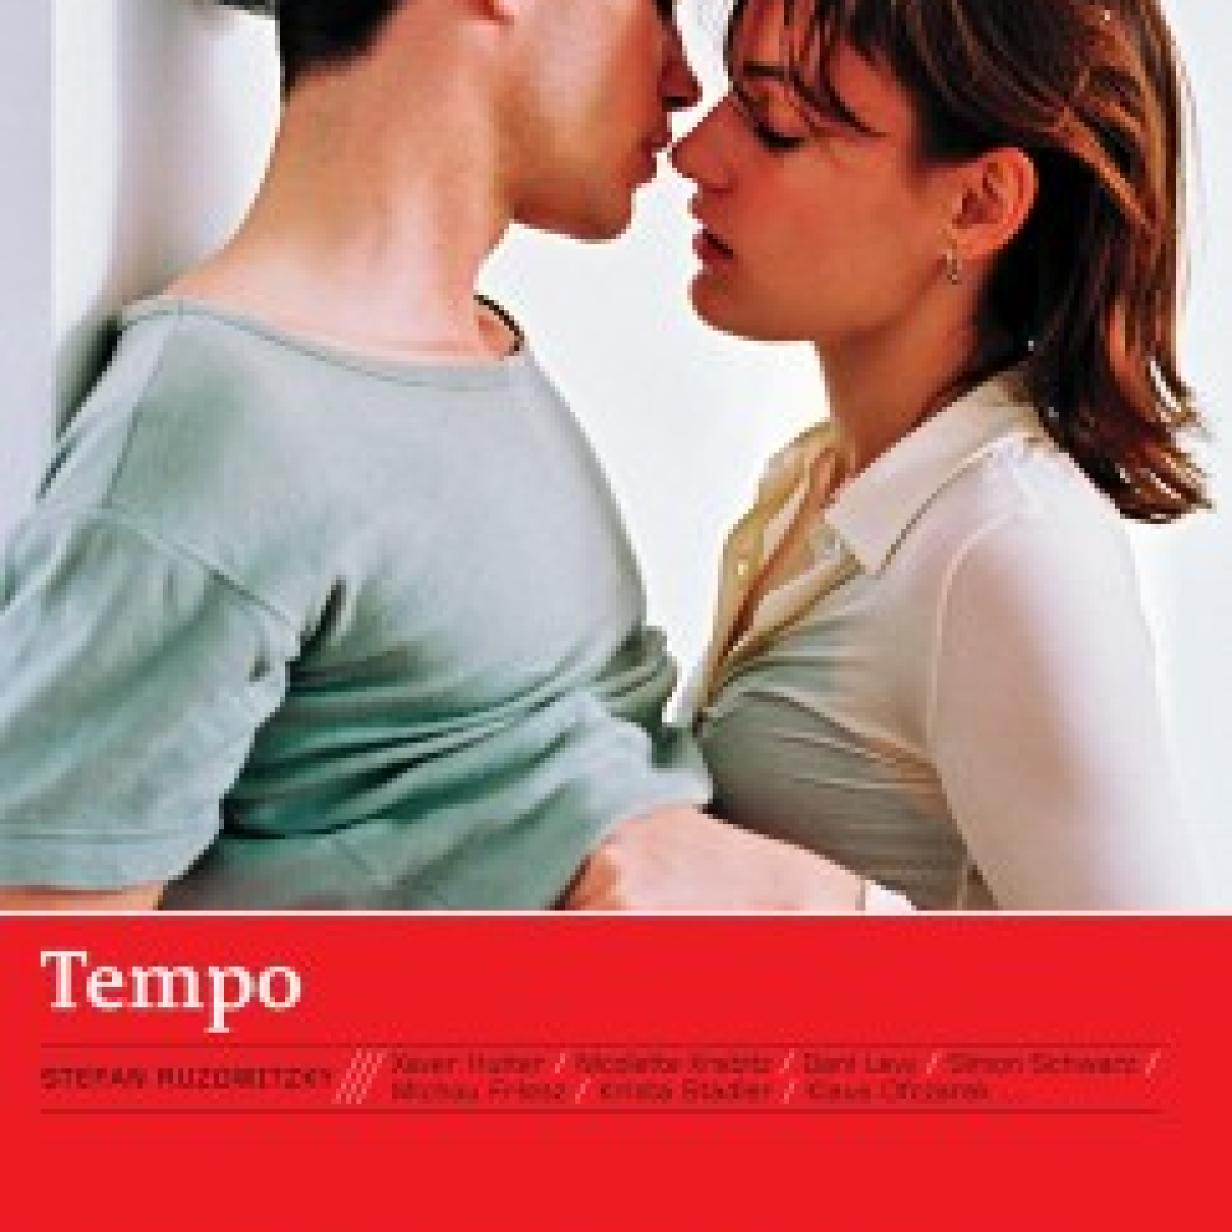 Tempo-Dating